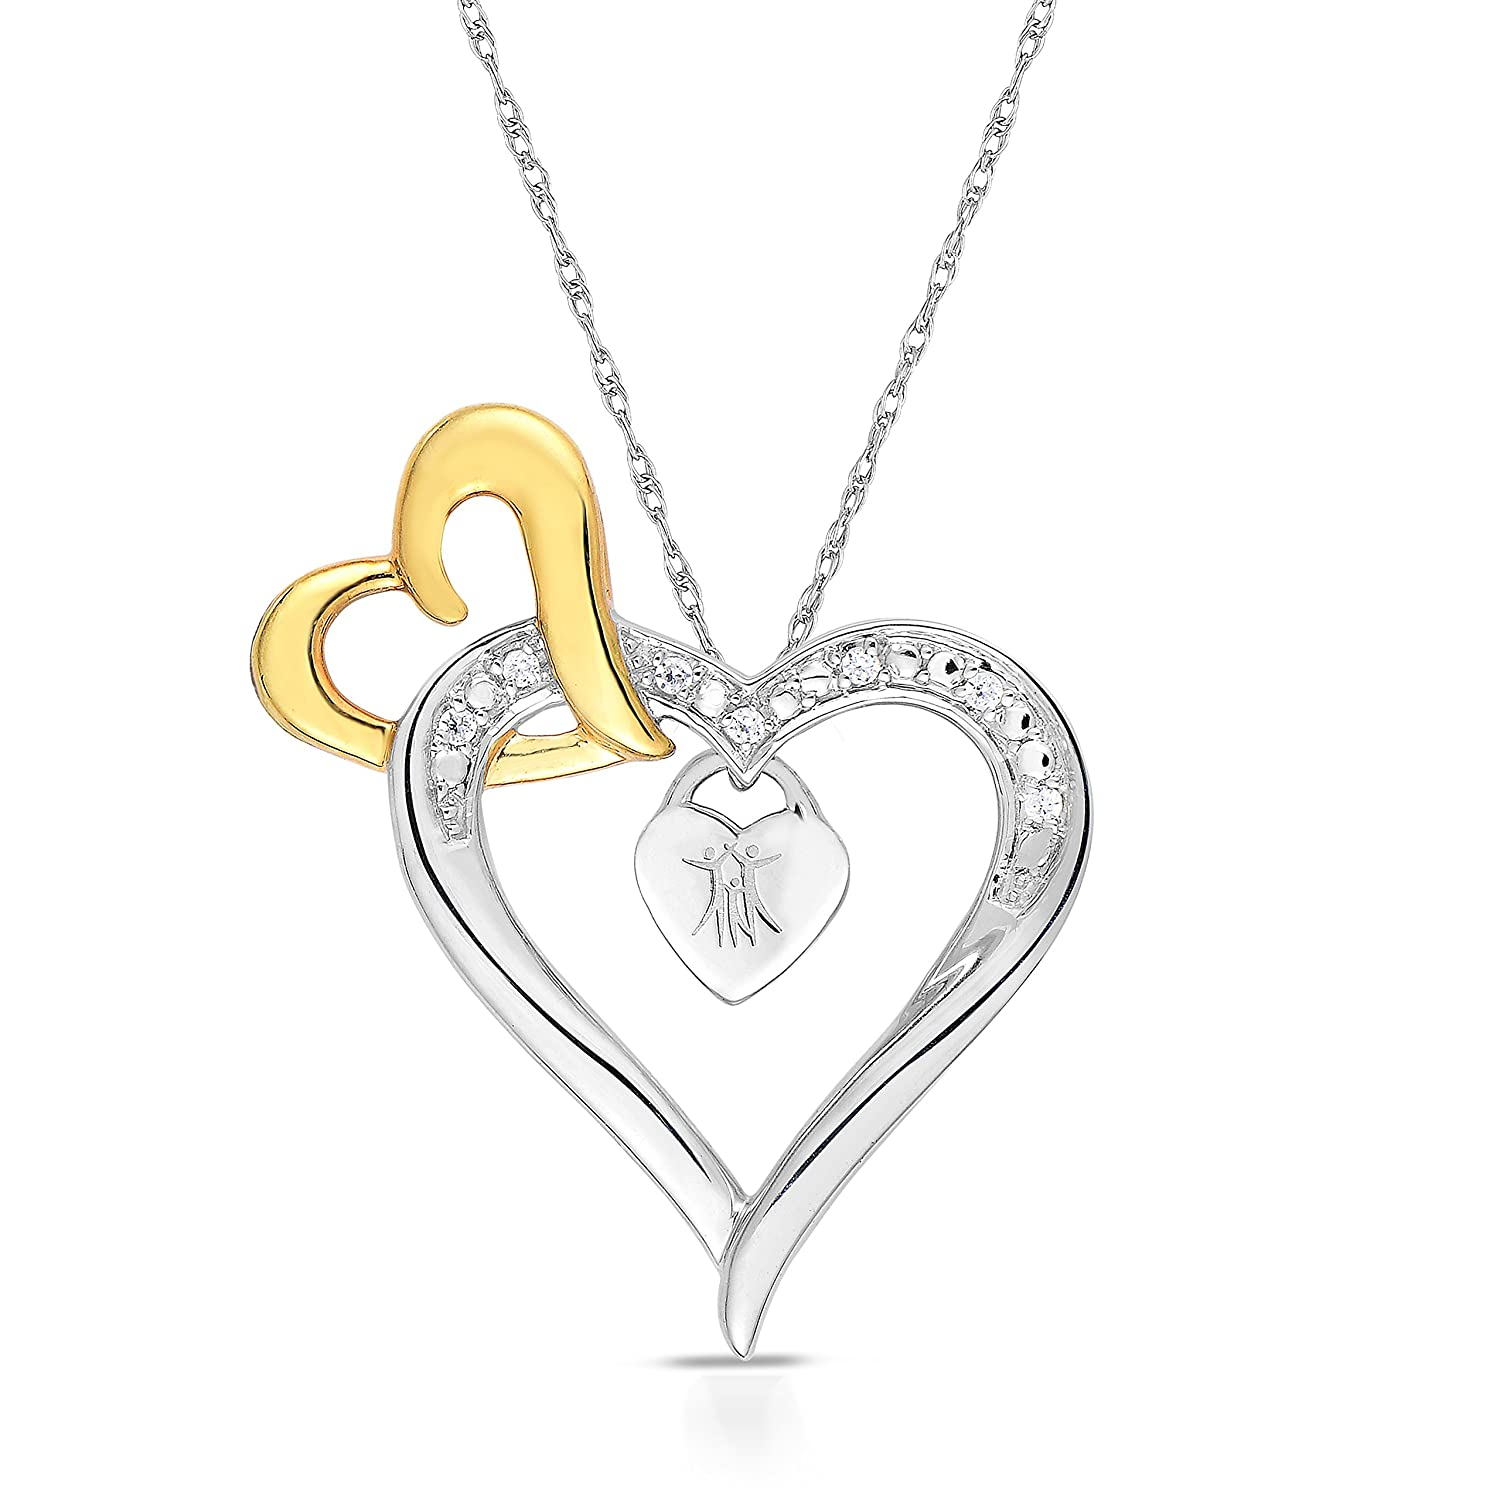 BLOWOUT SALE City of Hope 14K Yellow Gold Plated Sterling Silver Diamond Three Hearts of Survival Necklace 1//20 cttw, 18-19 Inch